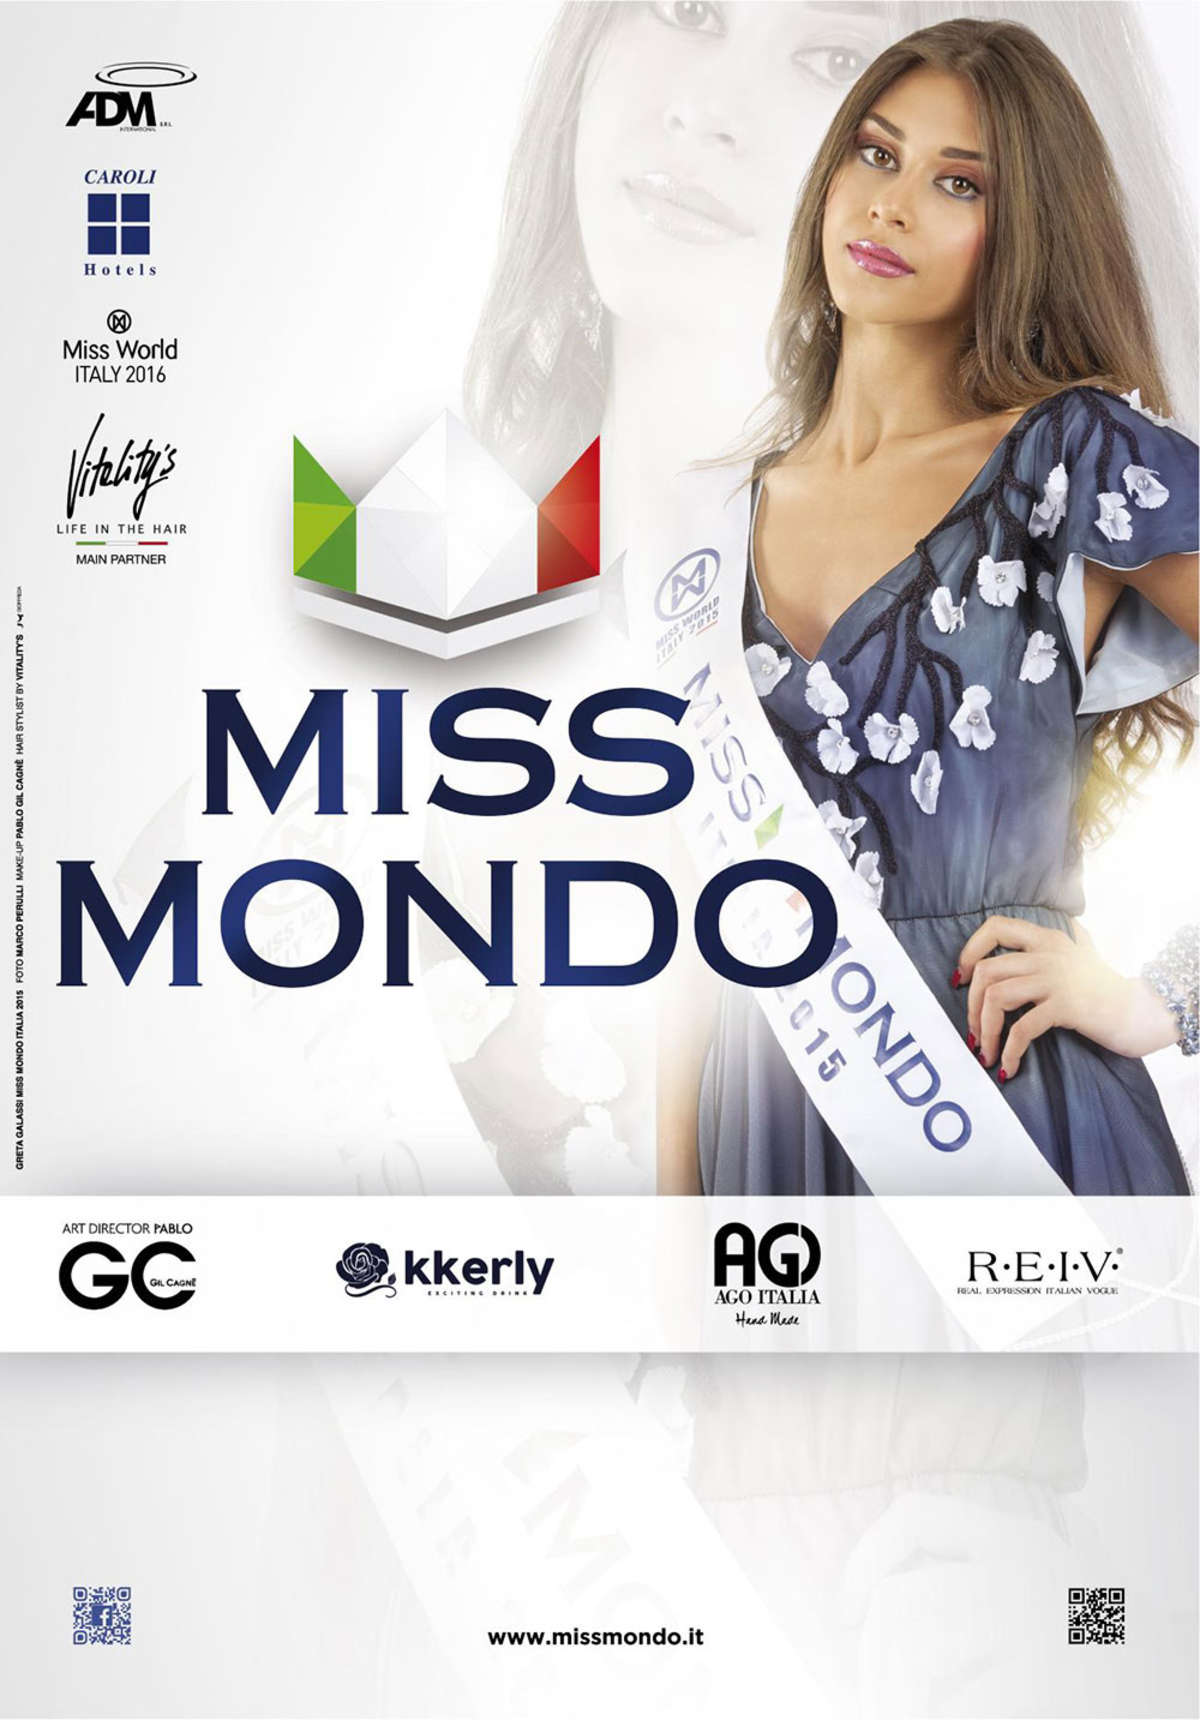 KKERLY DIVENTA MISS PER MISSMONDO